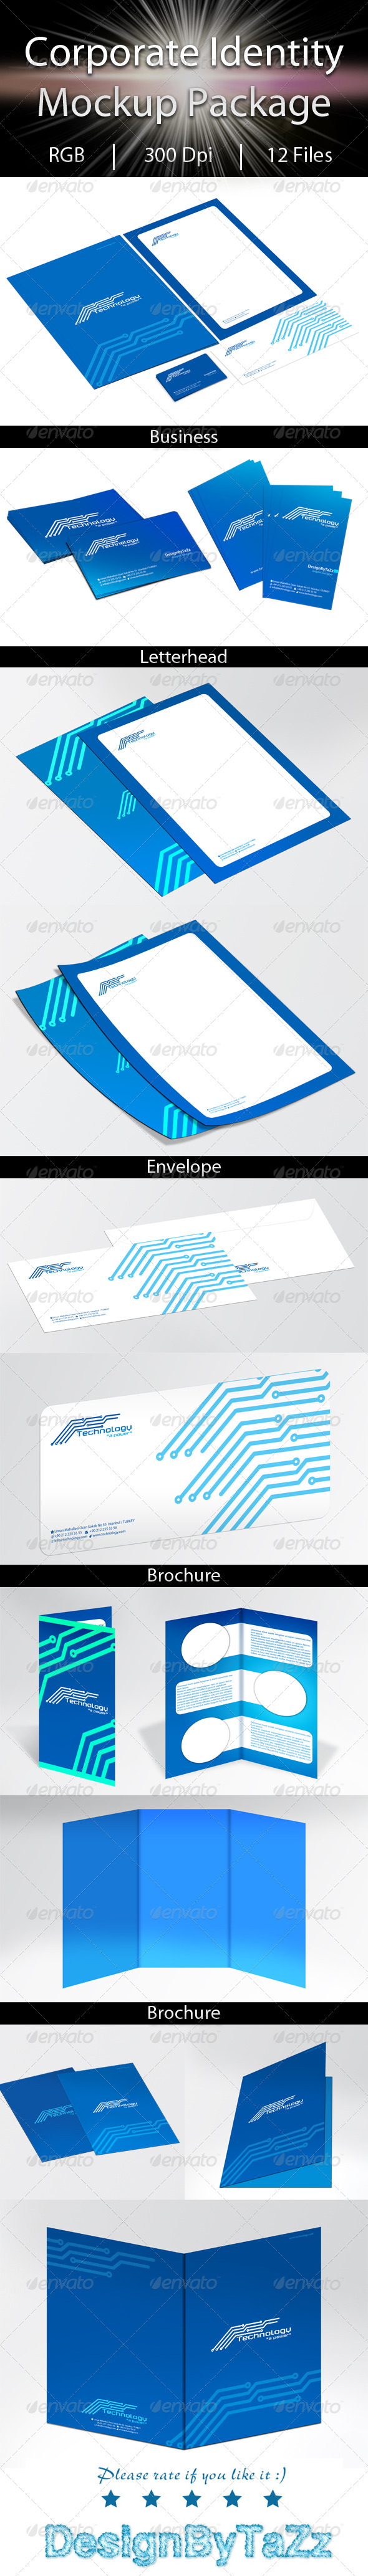 Corporate Identity Mockup Package